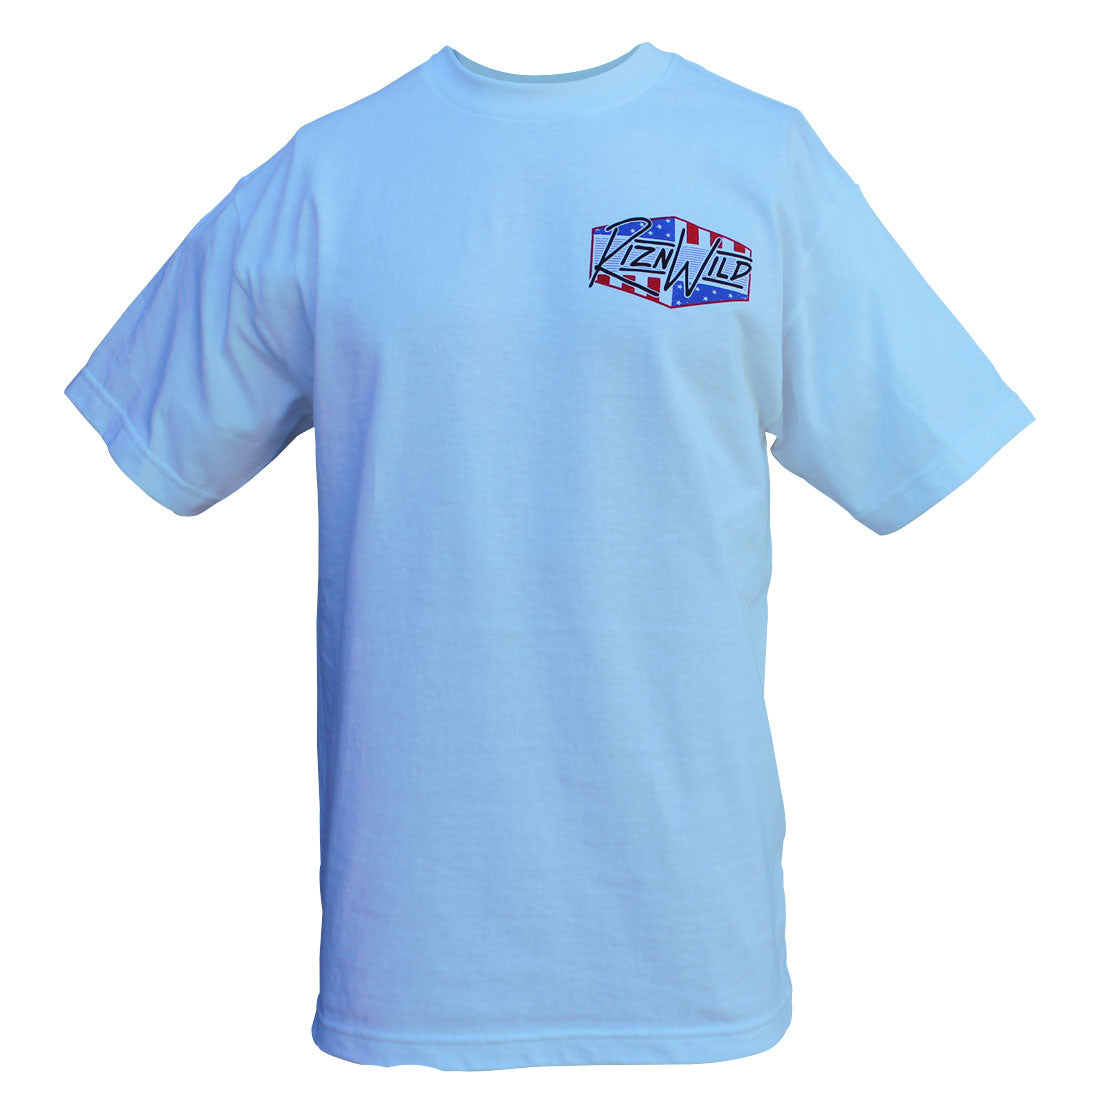 RIZNWILD | Men's powder blue t-shirt left chest screen print design